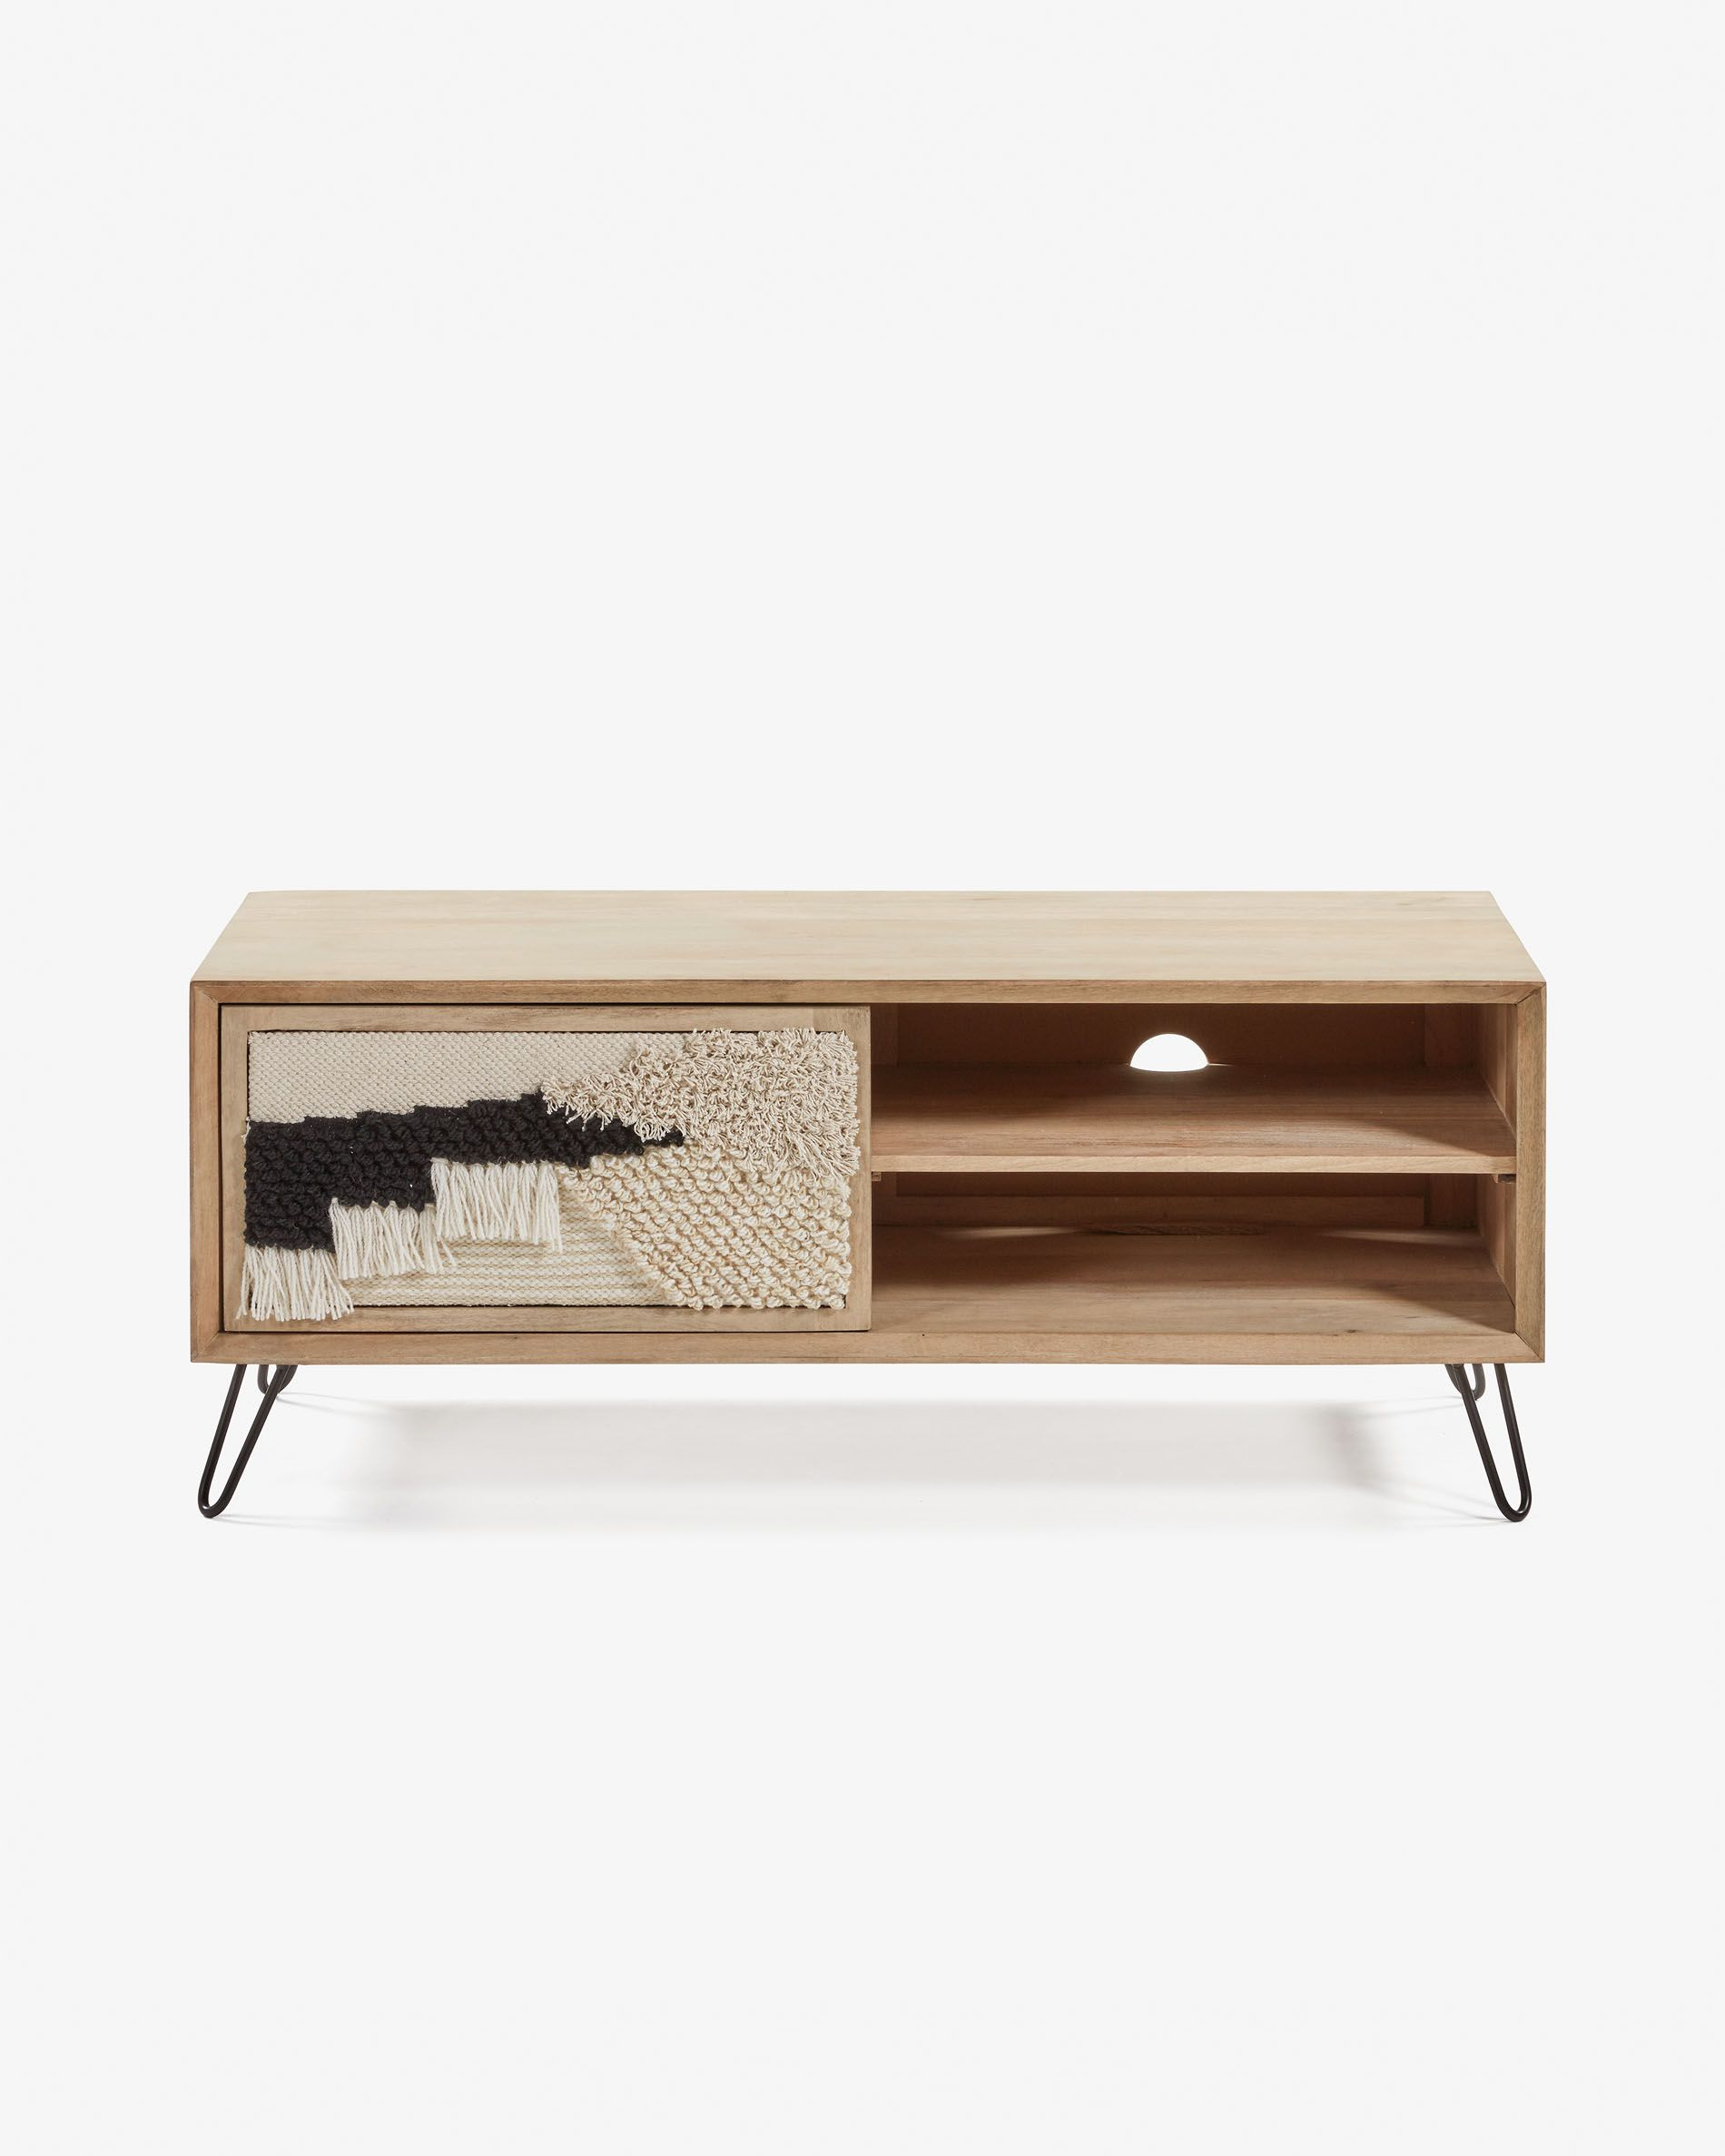 Pro Design Tv Meubel.Kenelly Tv Stand 120 X 50 Cm Kave Home